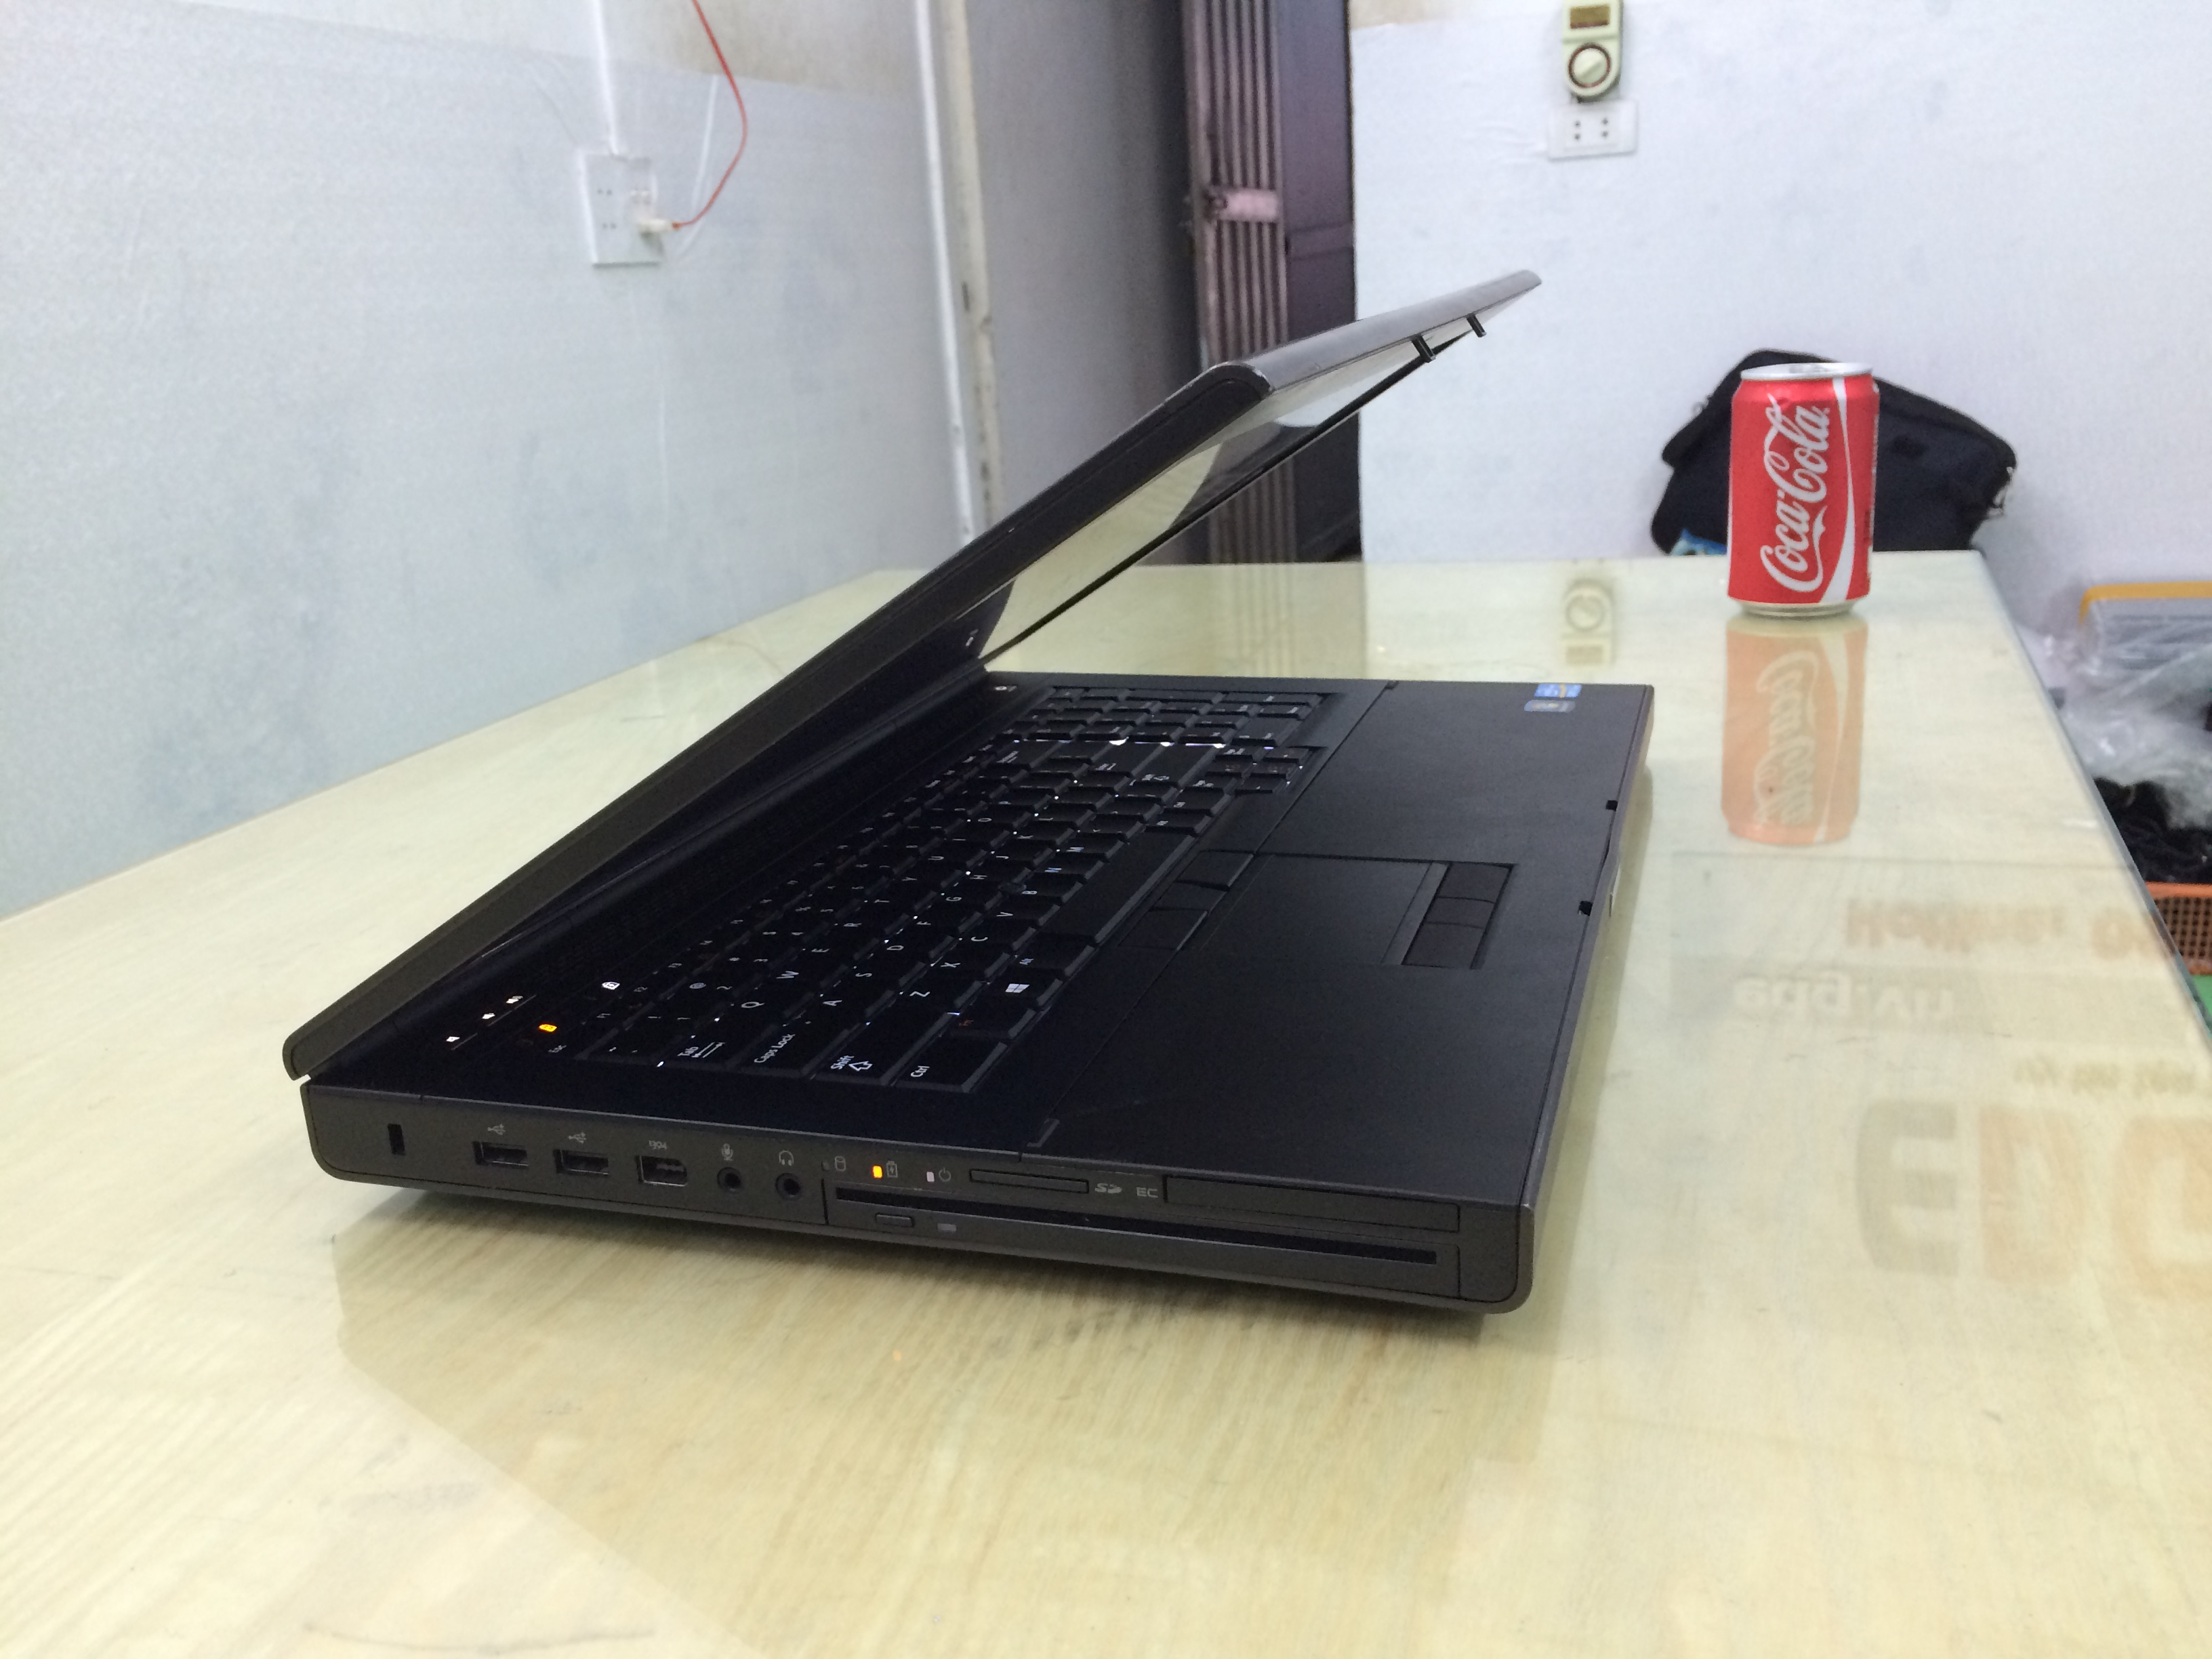 Laptop cũ Dell Precision M6700 (Core i7-3720QM,Ram 8gb,ổ cứng 500gb,17.3 inch Full HD,Card rời 4gb)